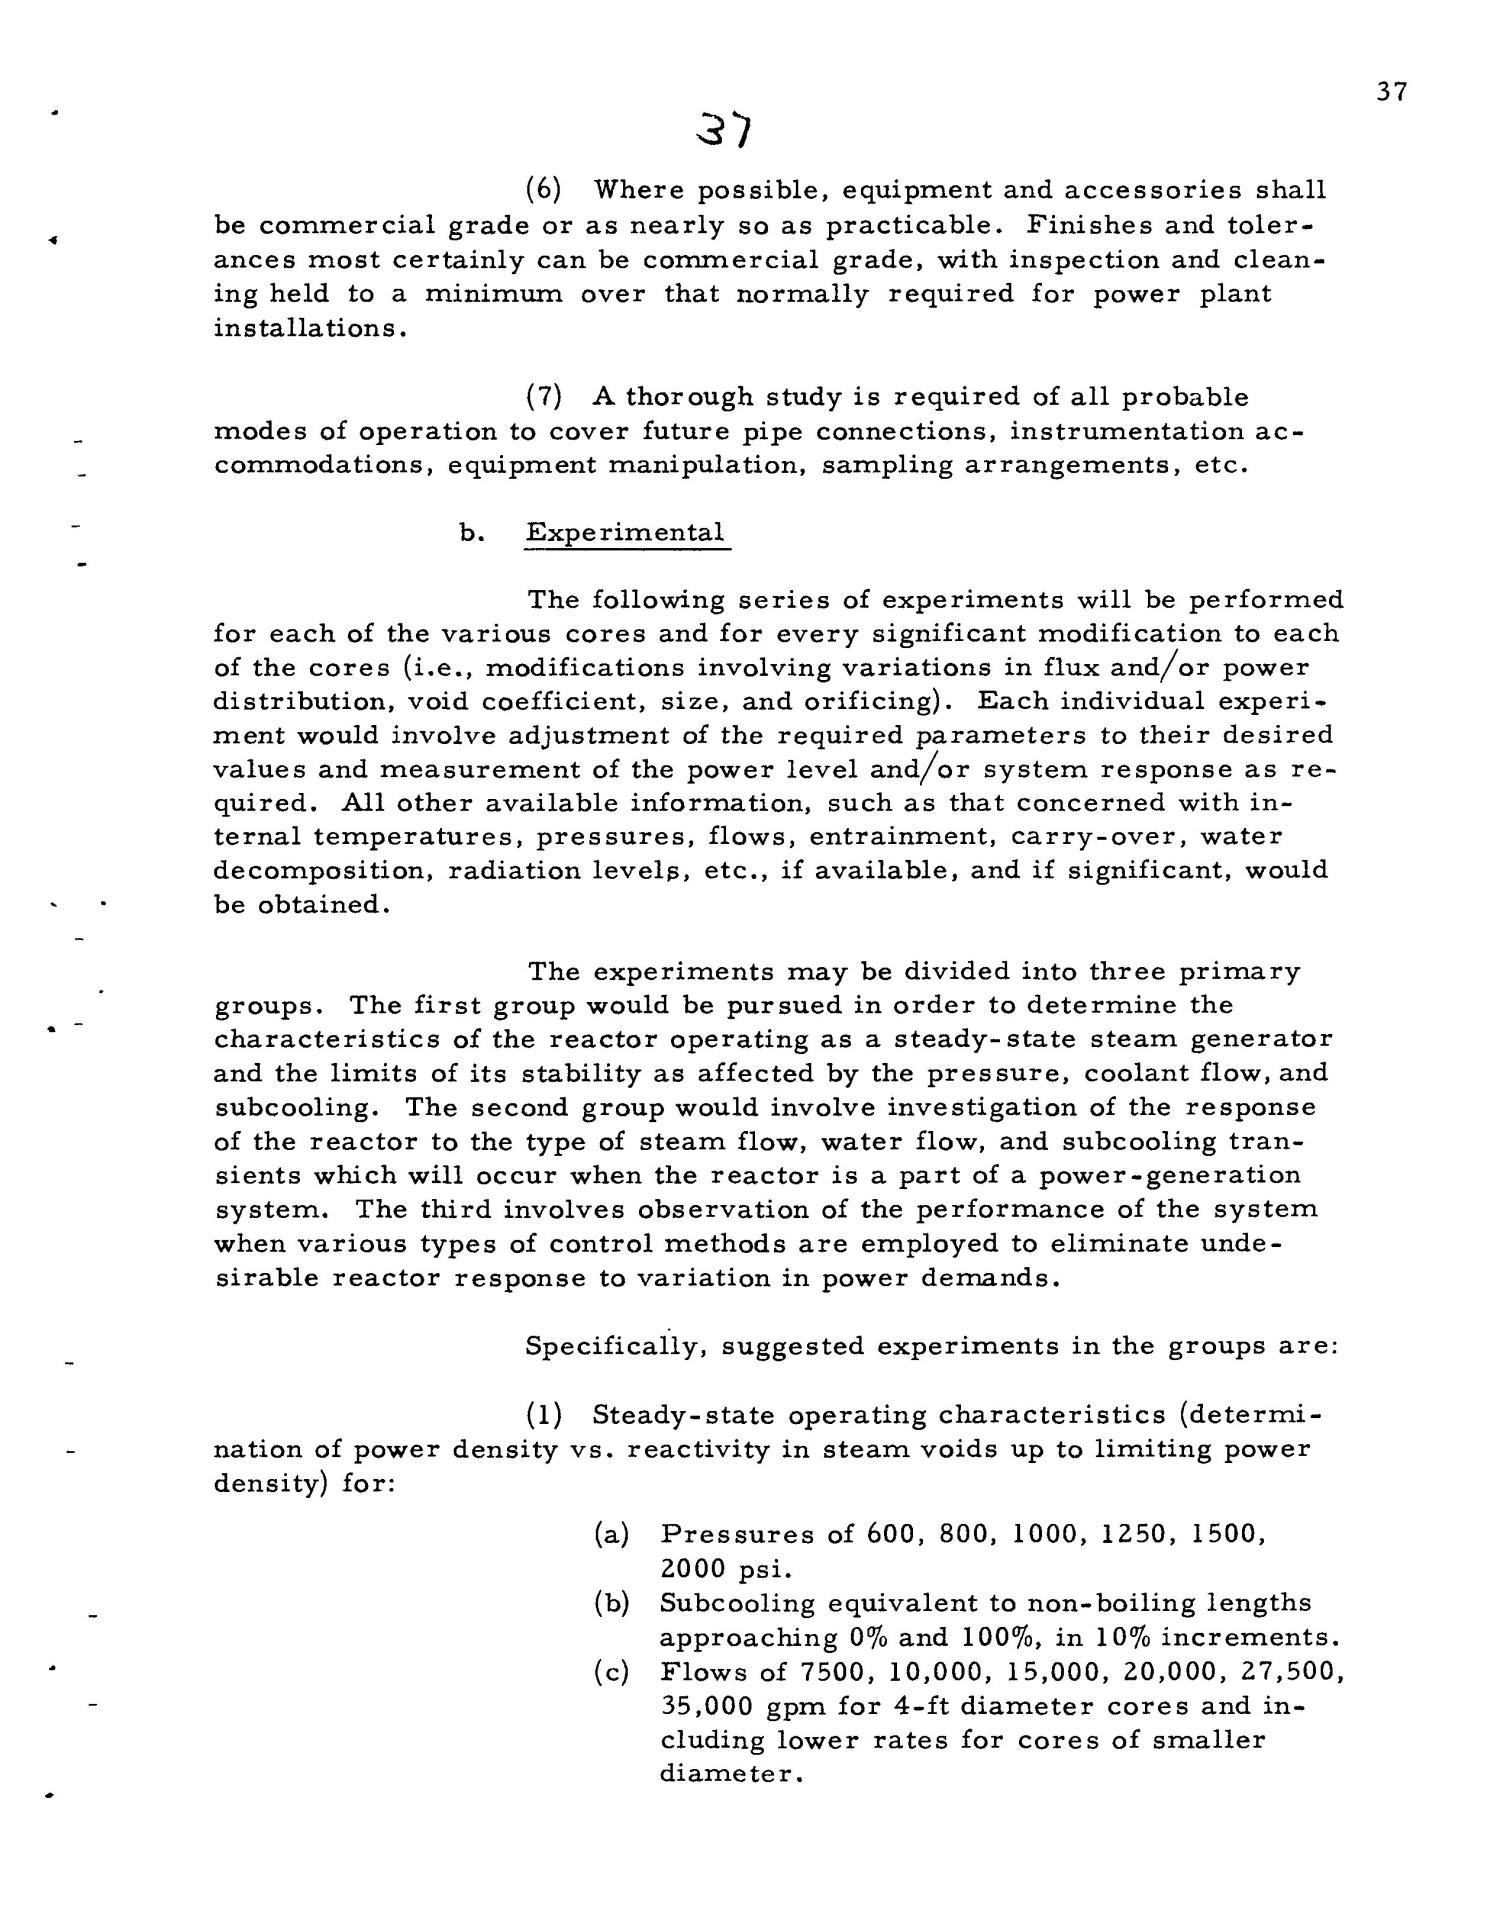 PRELIMINARY DESIGN REQUIREMENTS ARGONNE BOILING REACTOR (ARBOR) FACILITY. Revision I                                                                                                      [Sequence #]: 39 of 161